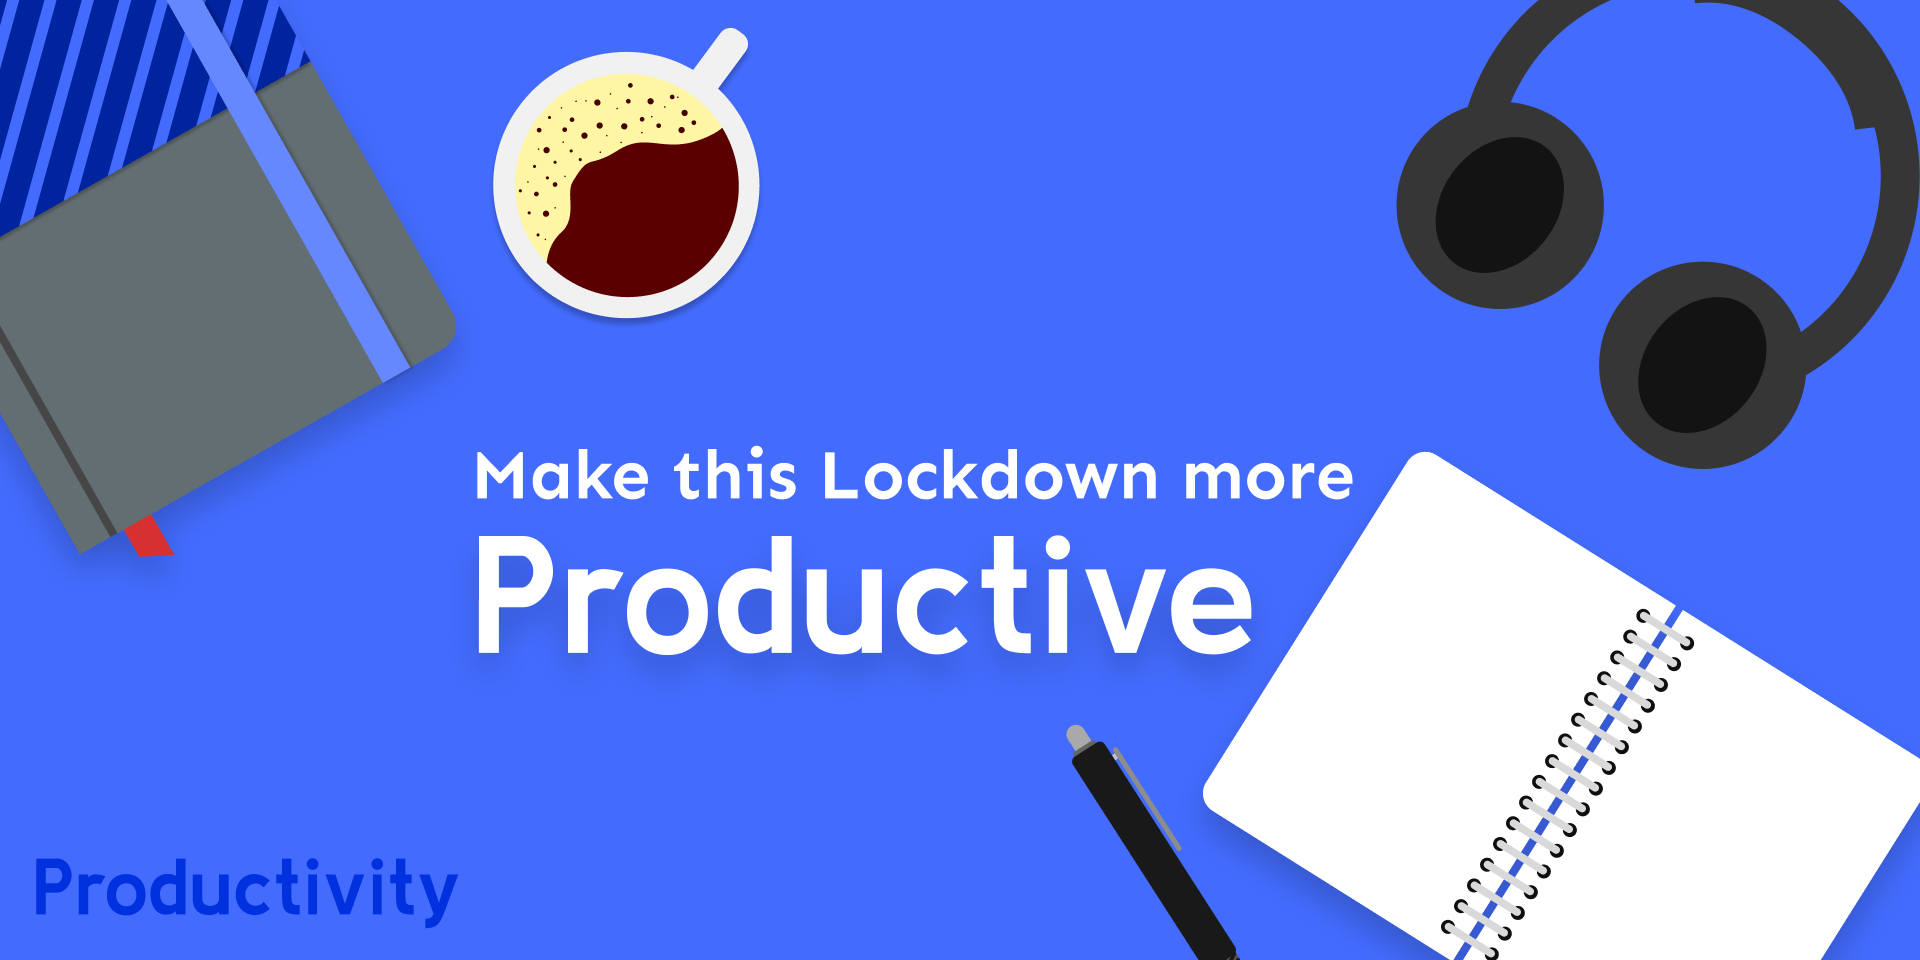 Make this Lockdown more Productive